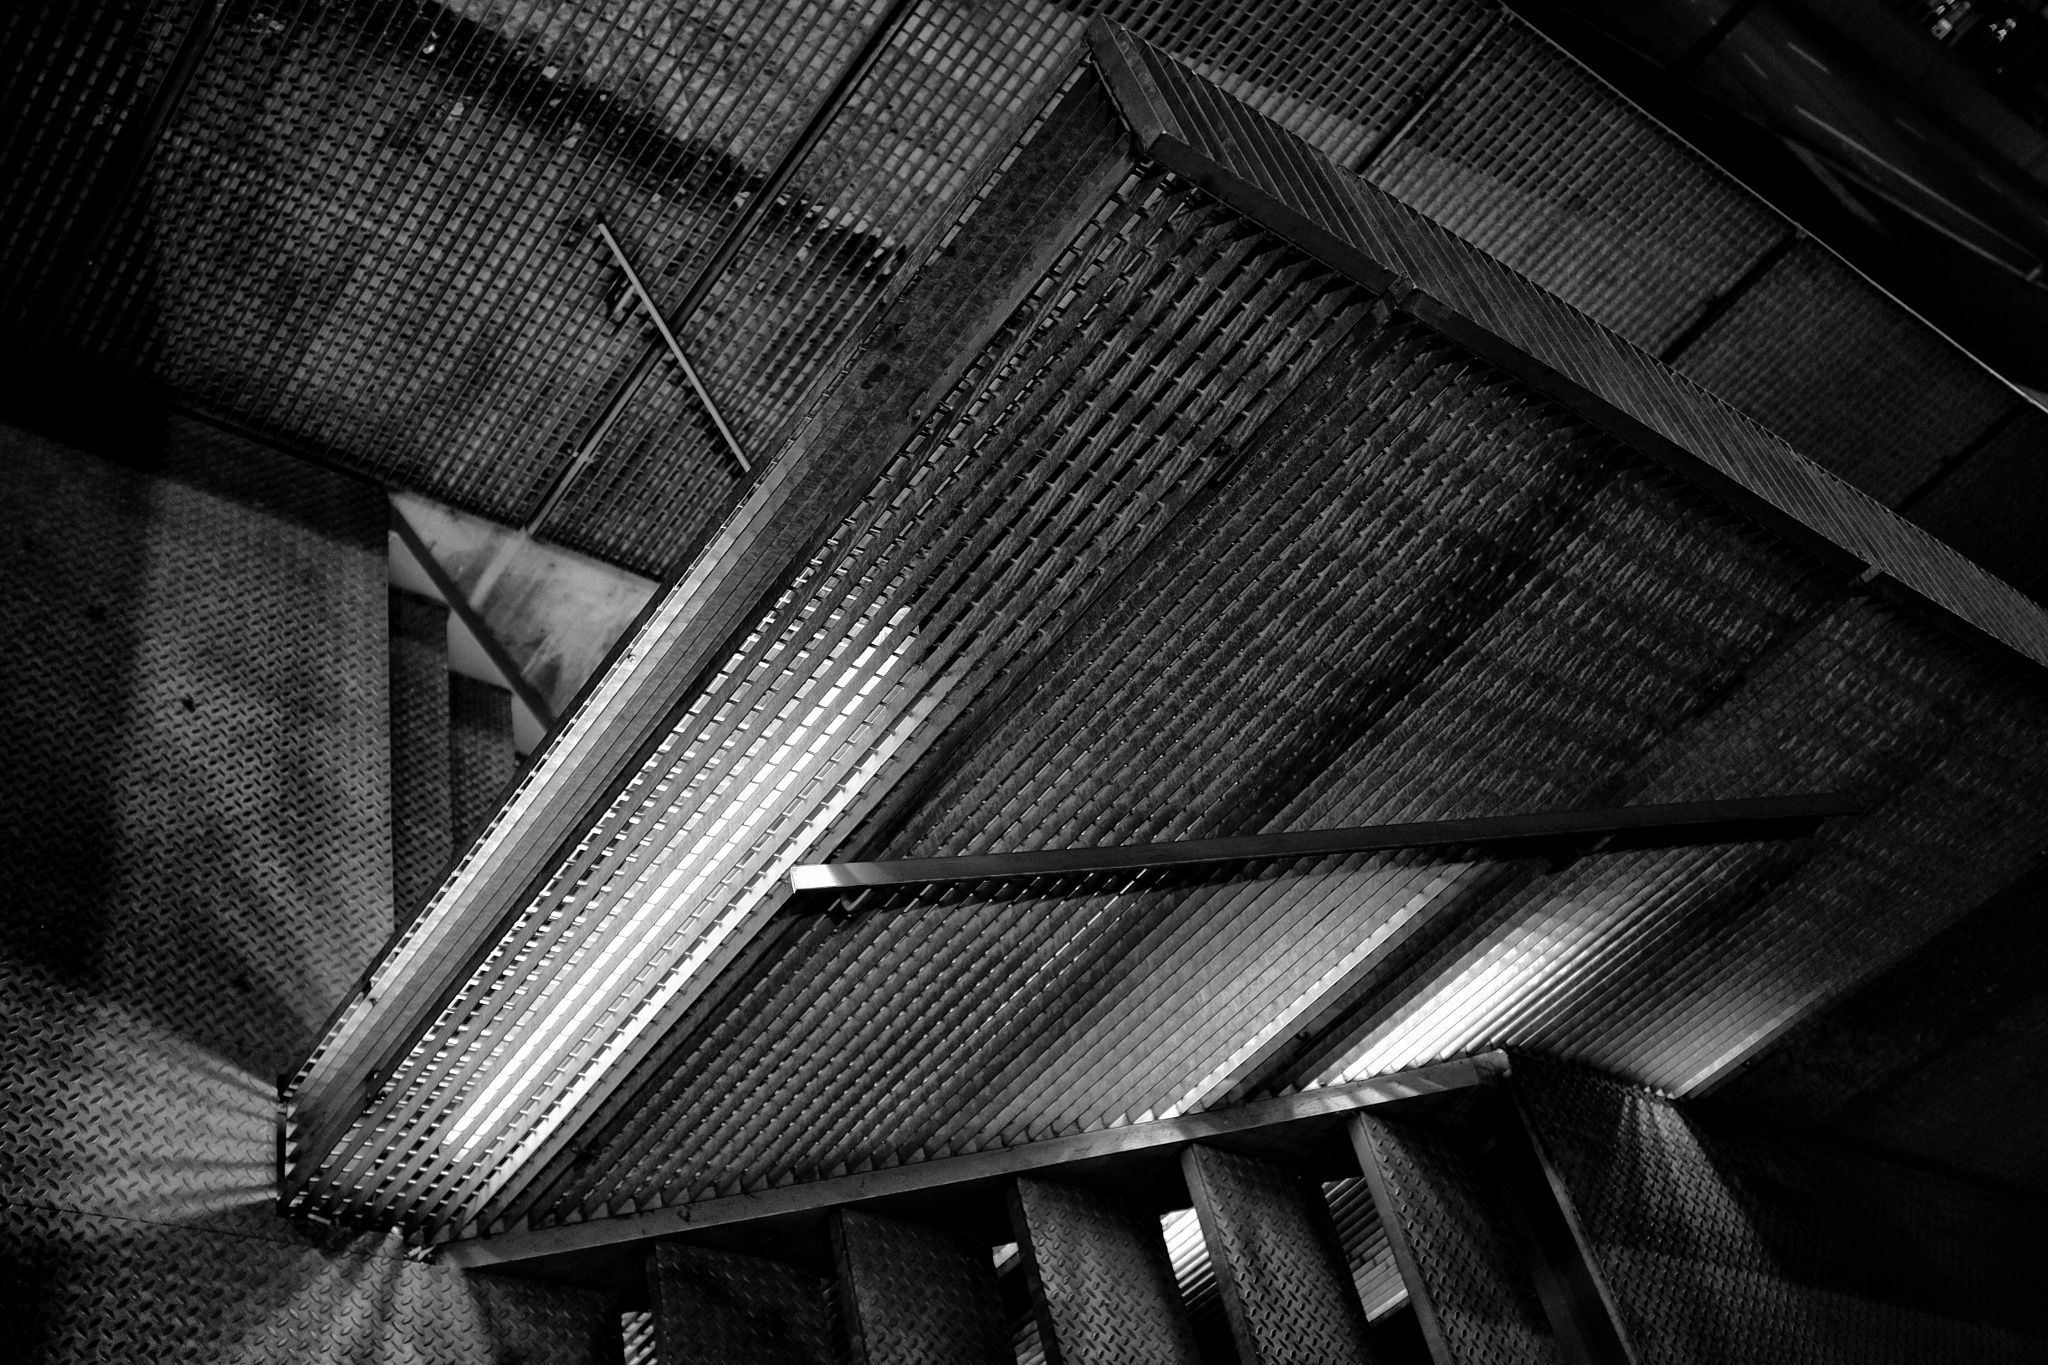 Steps into the guts of a subterranean parking lot may be sexy. At night, of course. :)